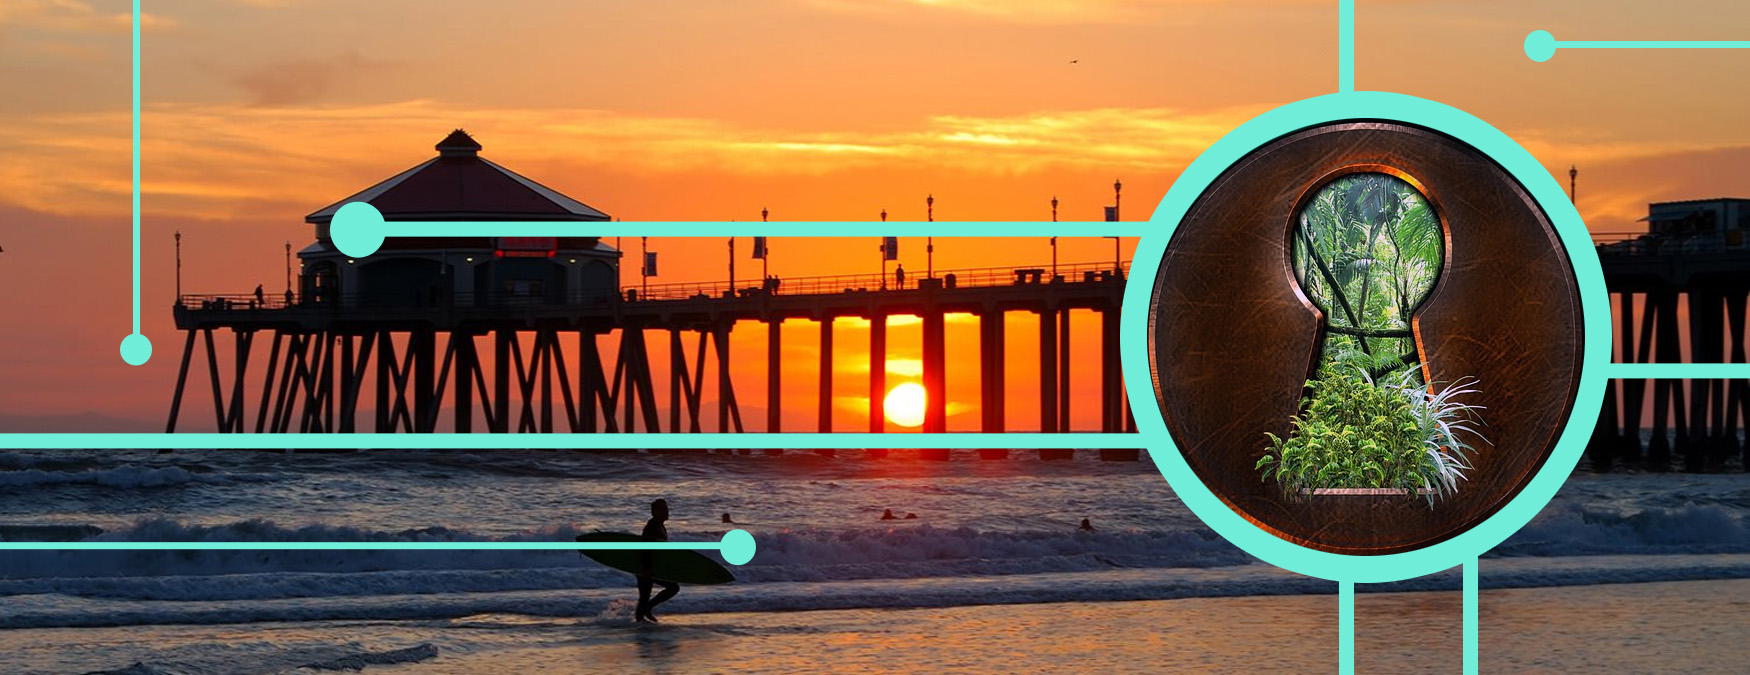 Huntington Beach City Page Image ERR